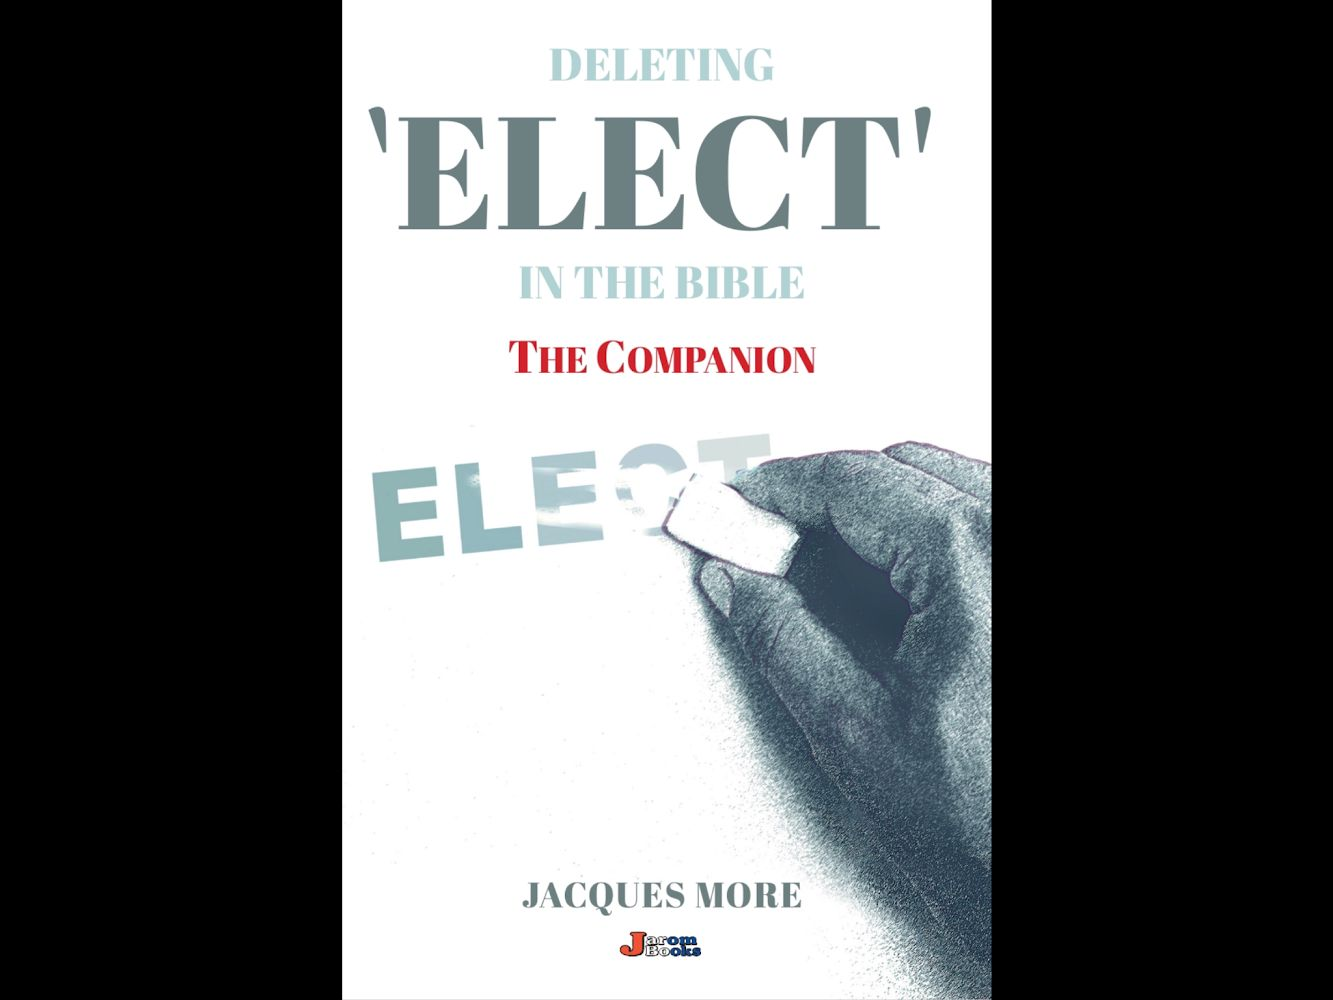 Deleting Elect in the Bible Companion